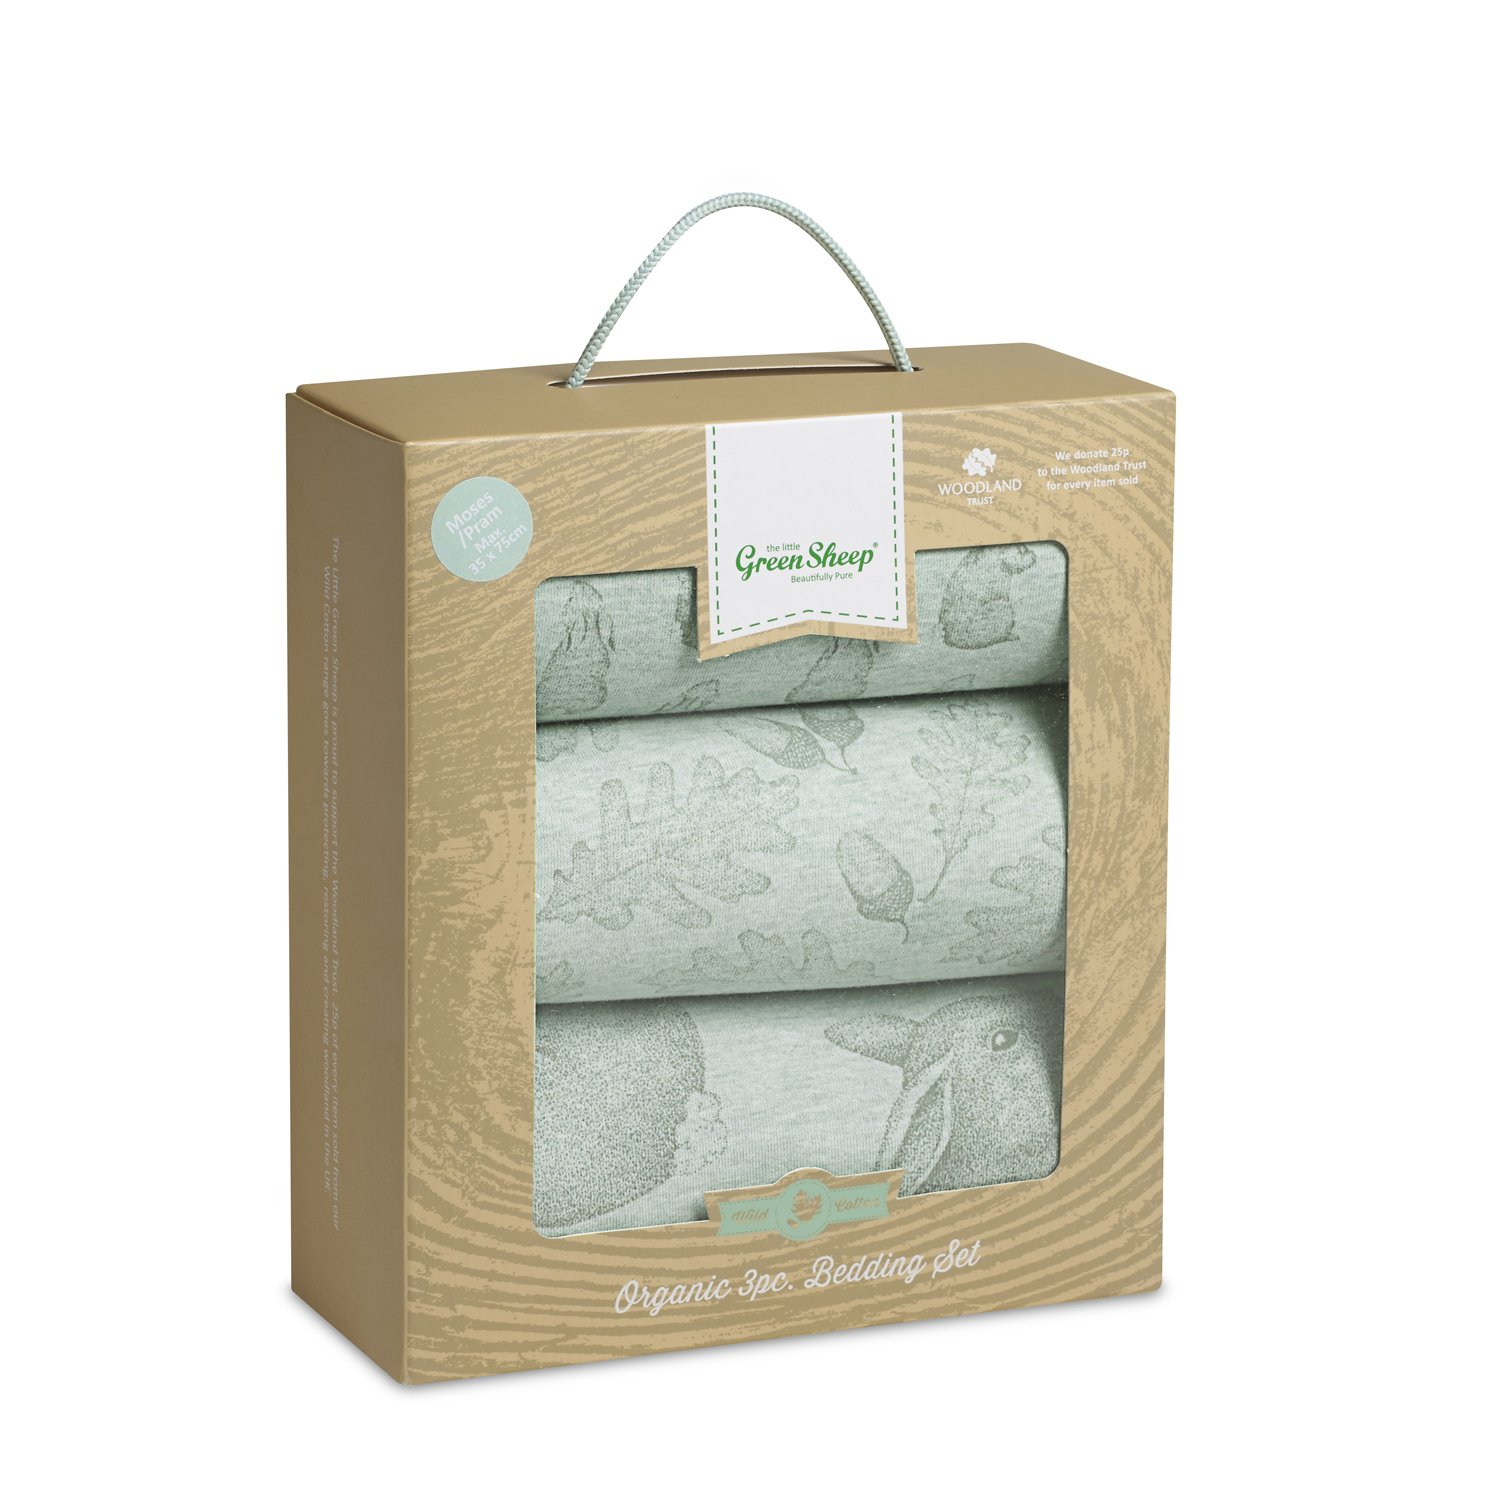 The Little Green Sheep Wild Cotton Organic Bedding Set (Rabbit) BD014B